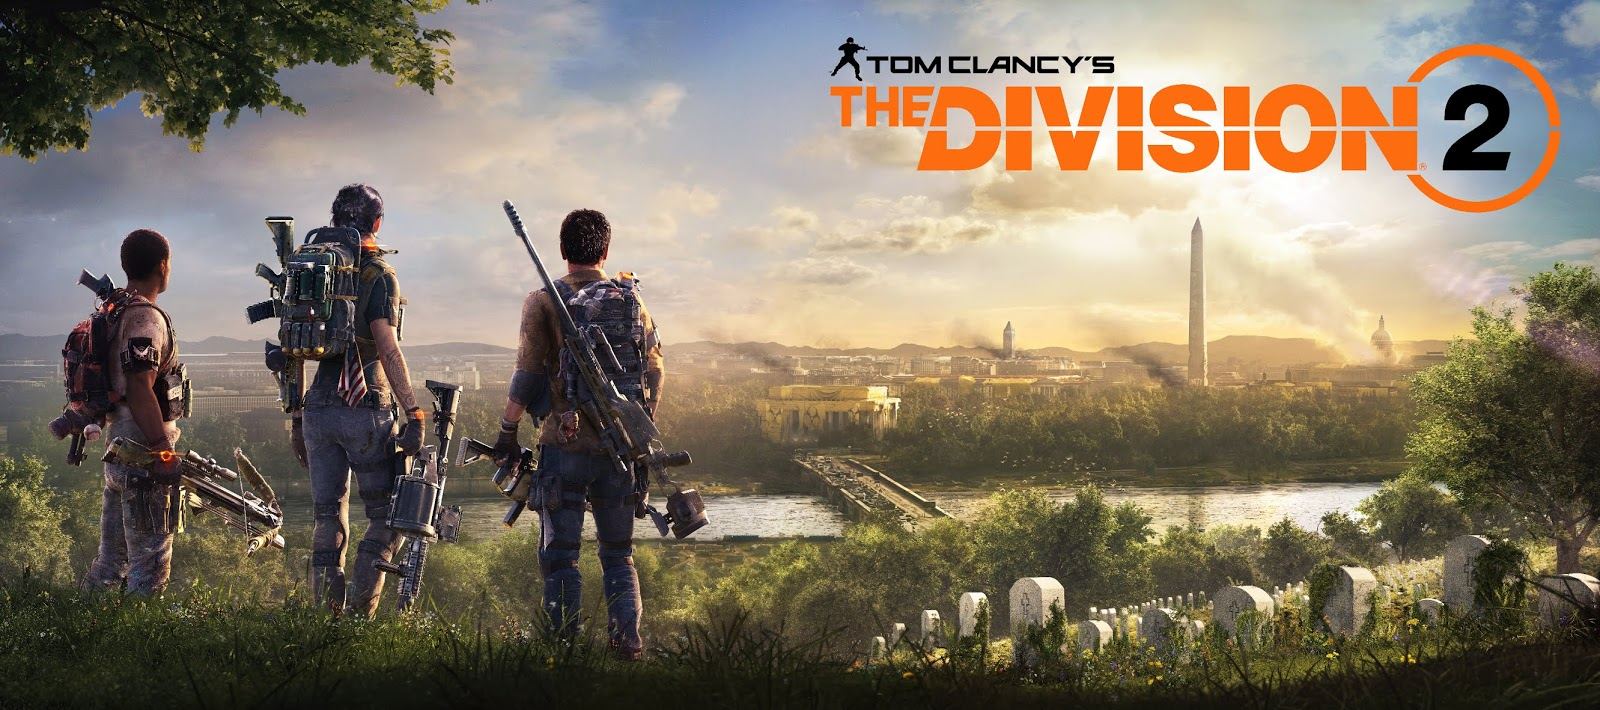 12d7a04b60a1b TheOmegaNerd - Gamer s Stuff  The Division 2 Launching March 15 ...